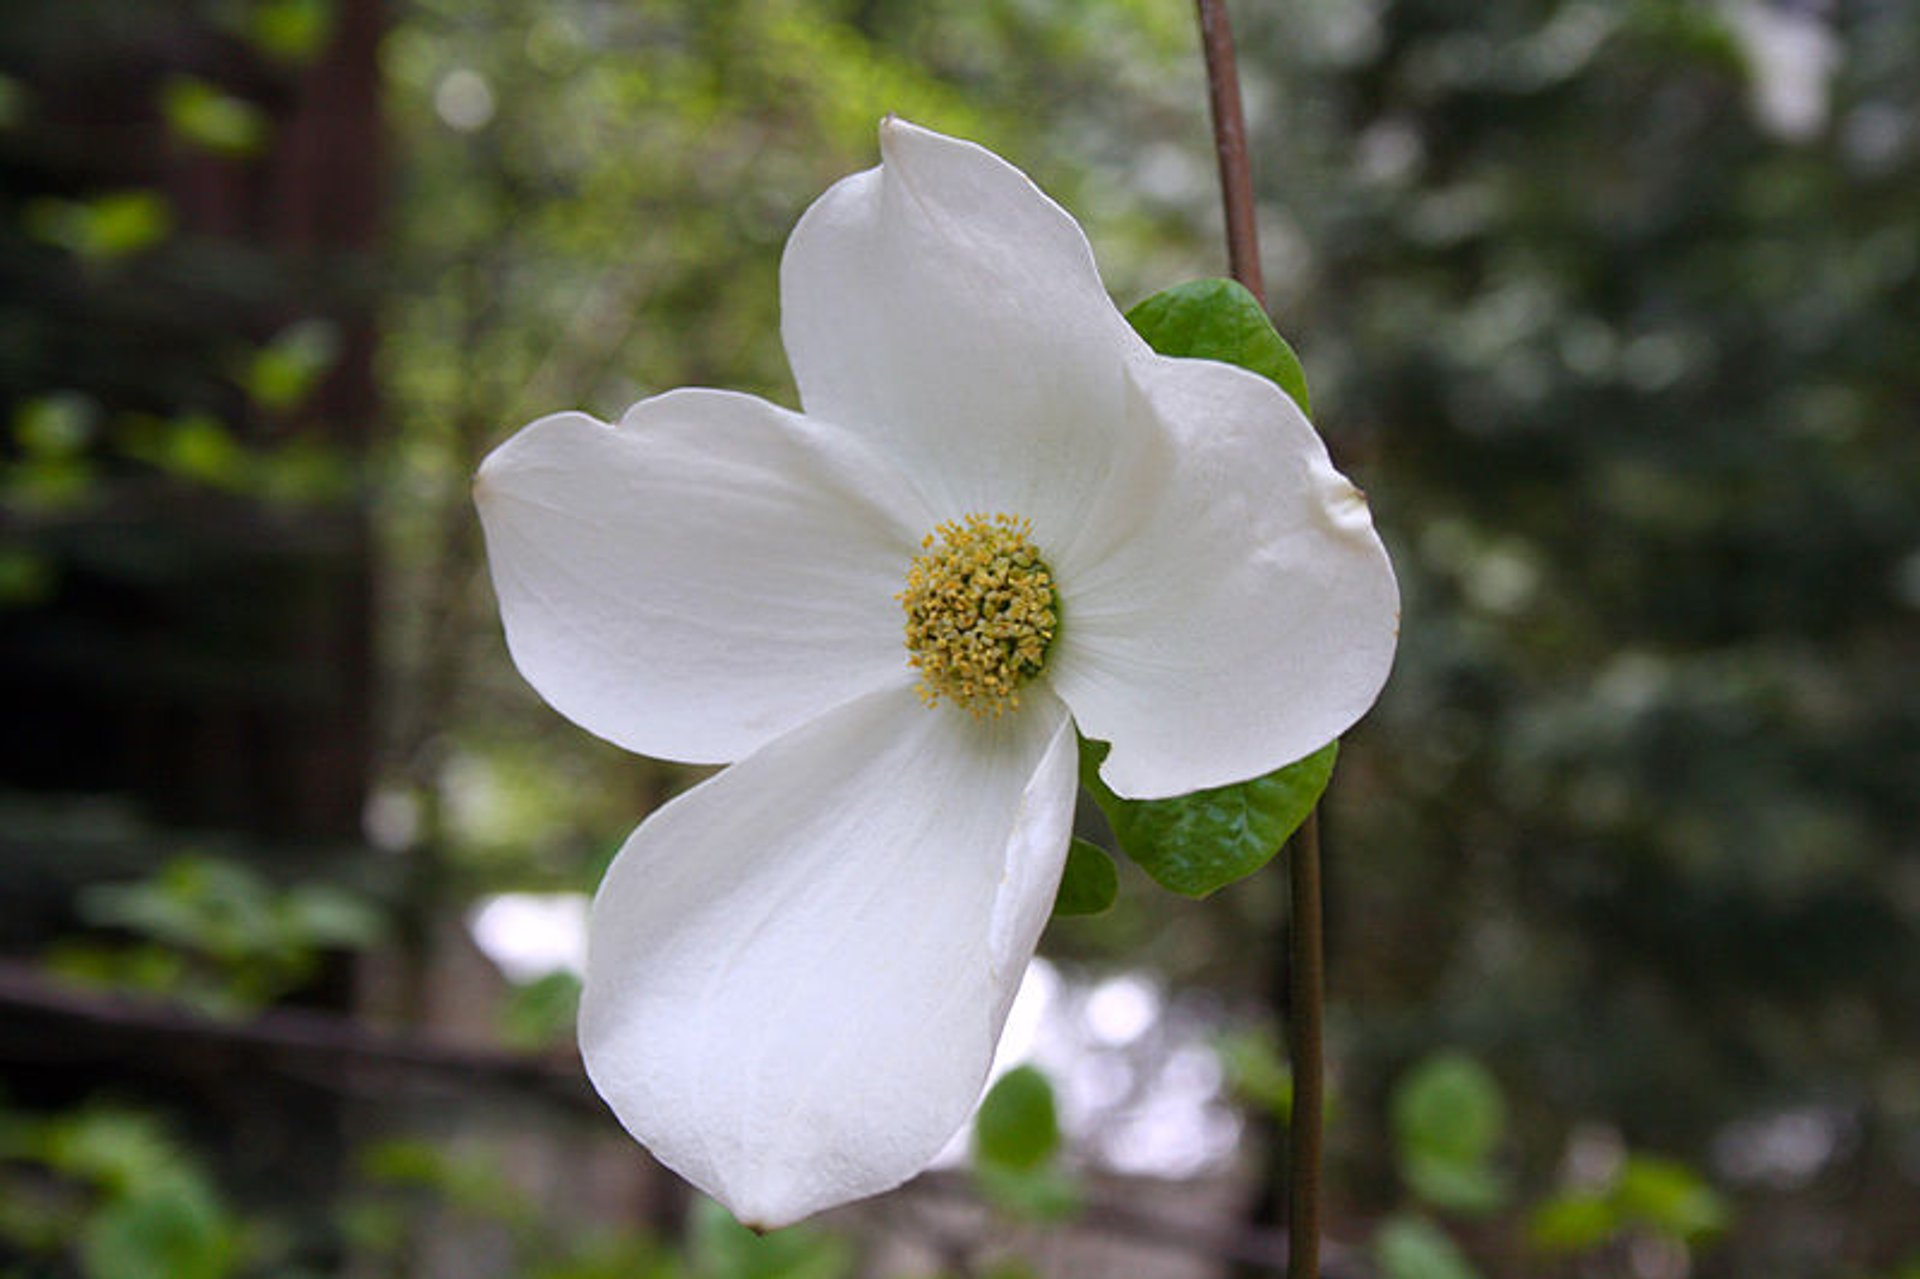 Best time for Dogwoods in Bloom in Yosemite 2020